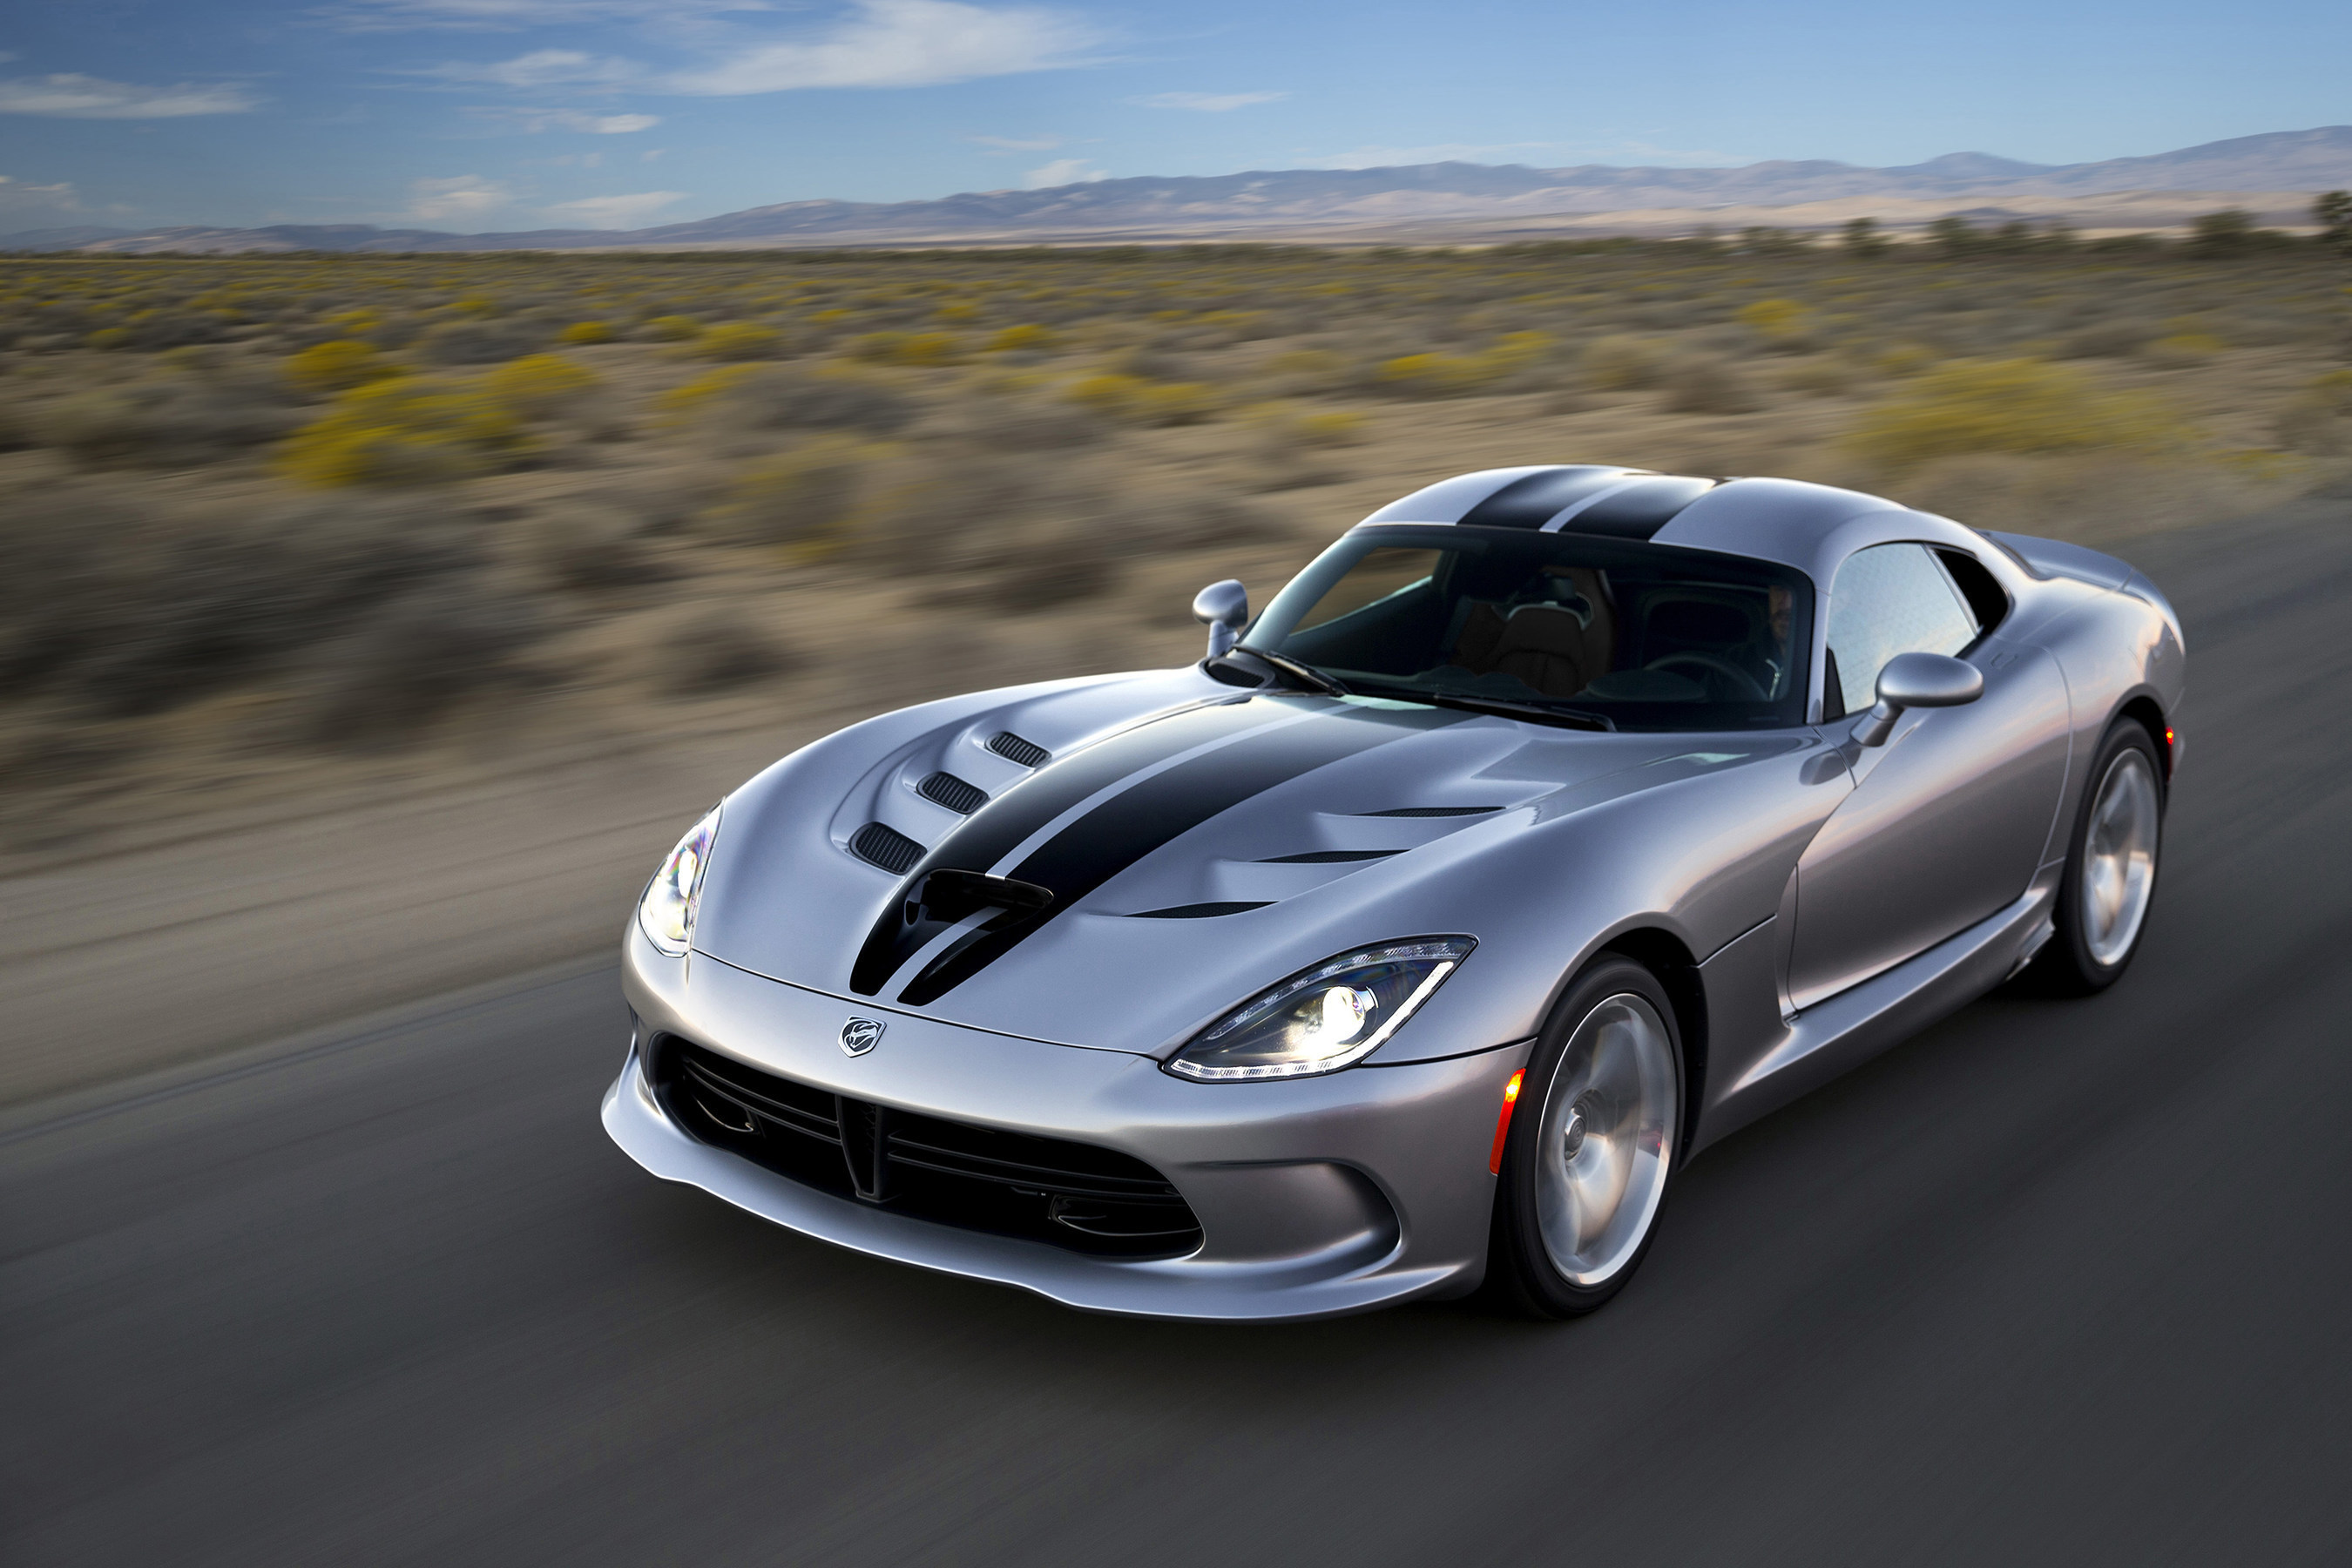 American Supercar Dodge Viper Named To Hagerty S Hot List Of Future Collectibles